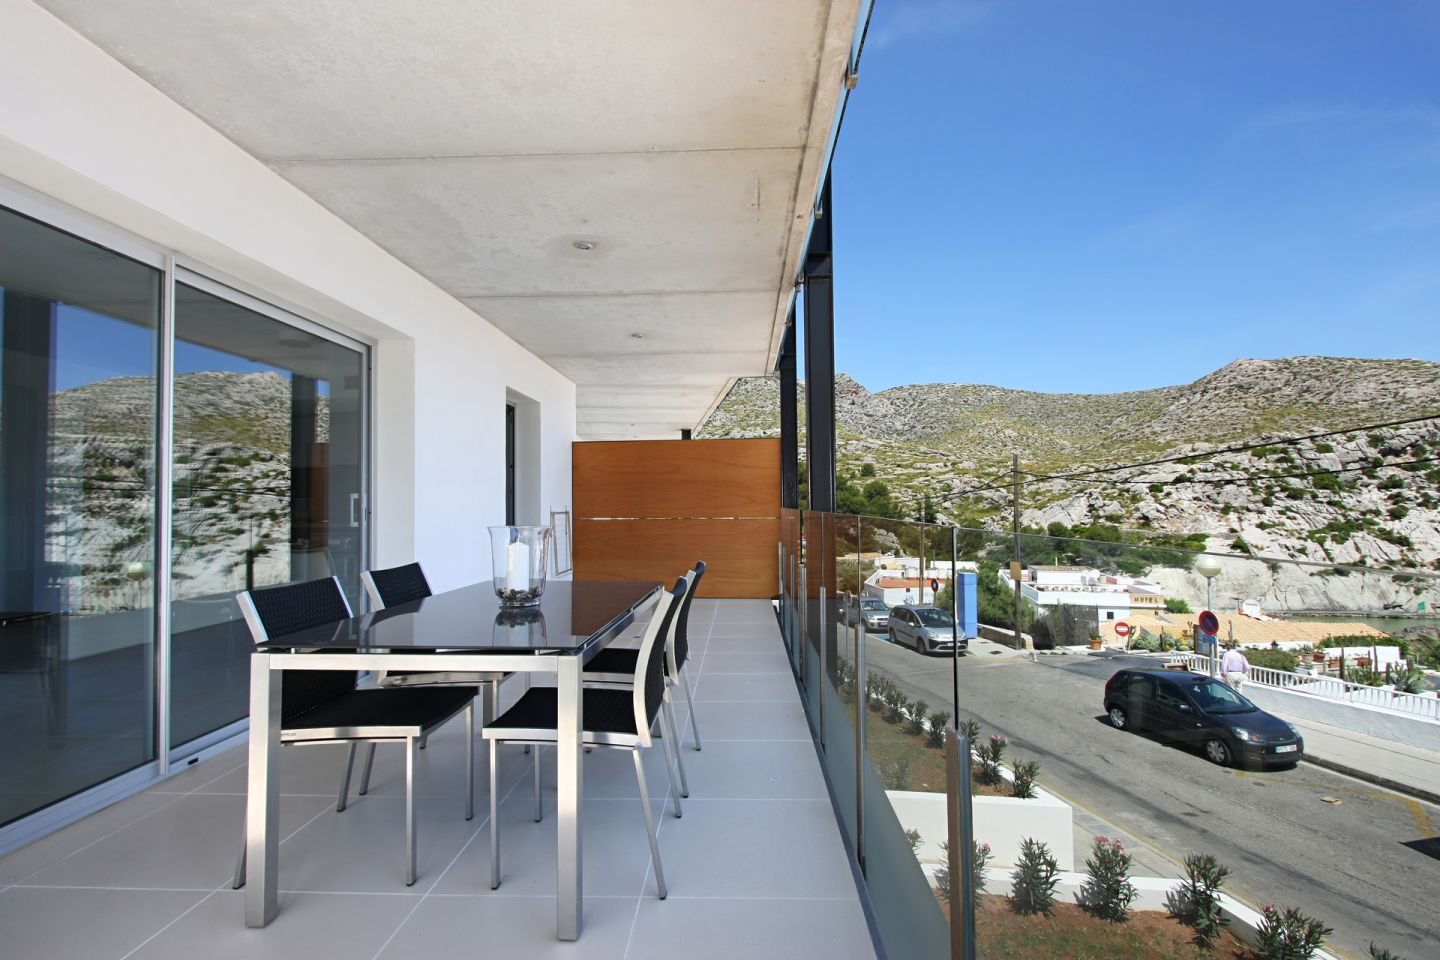 2 Bed Apartment for sale in Cala San Vicente 6